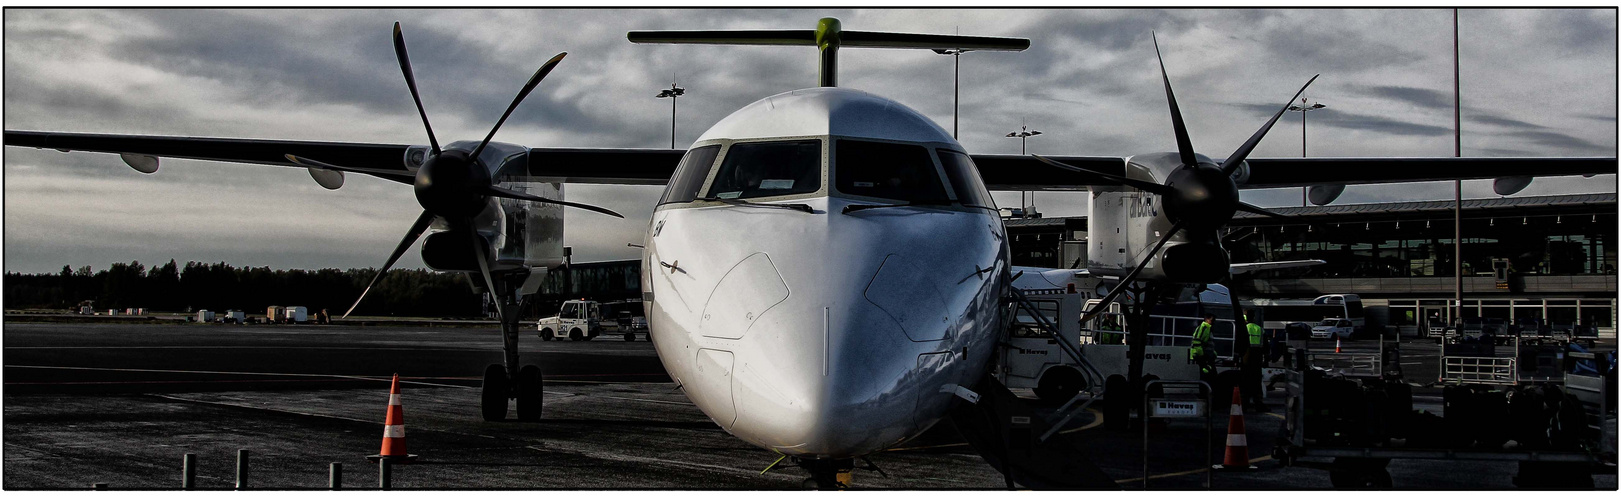 airBaltic - Turboprop